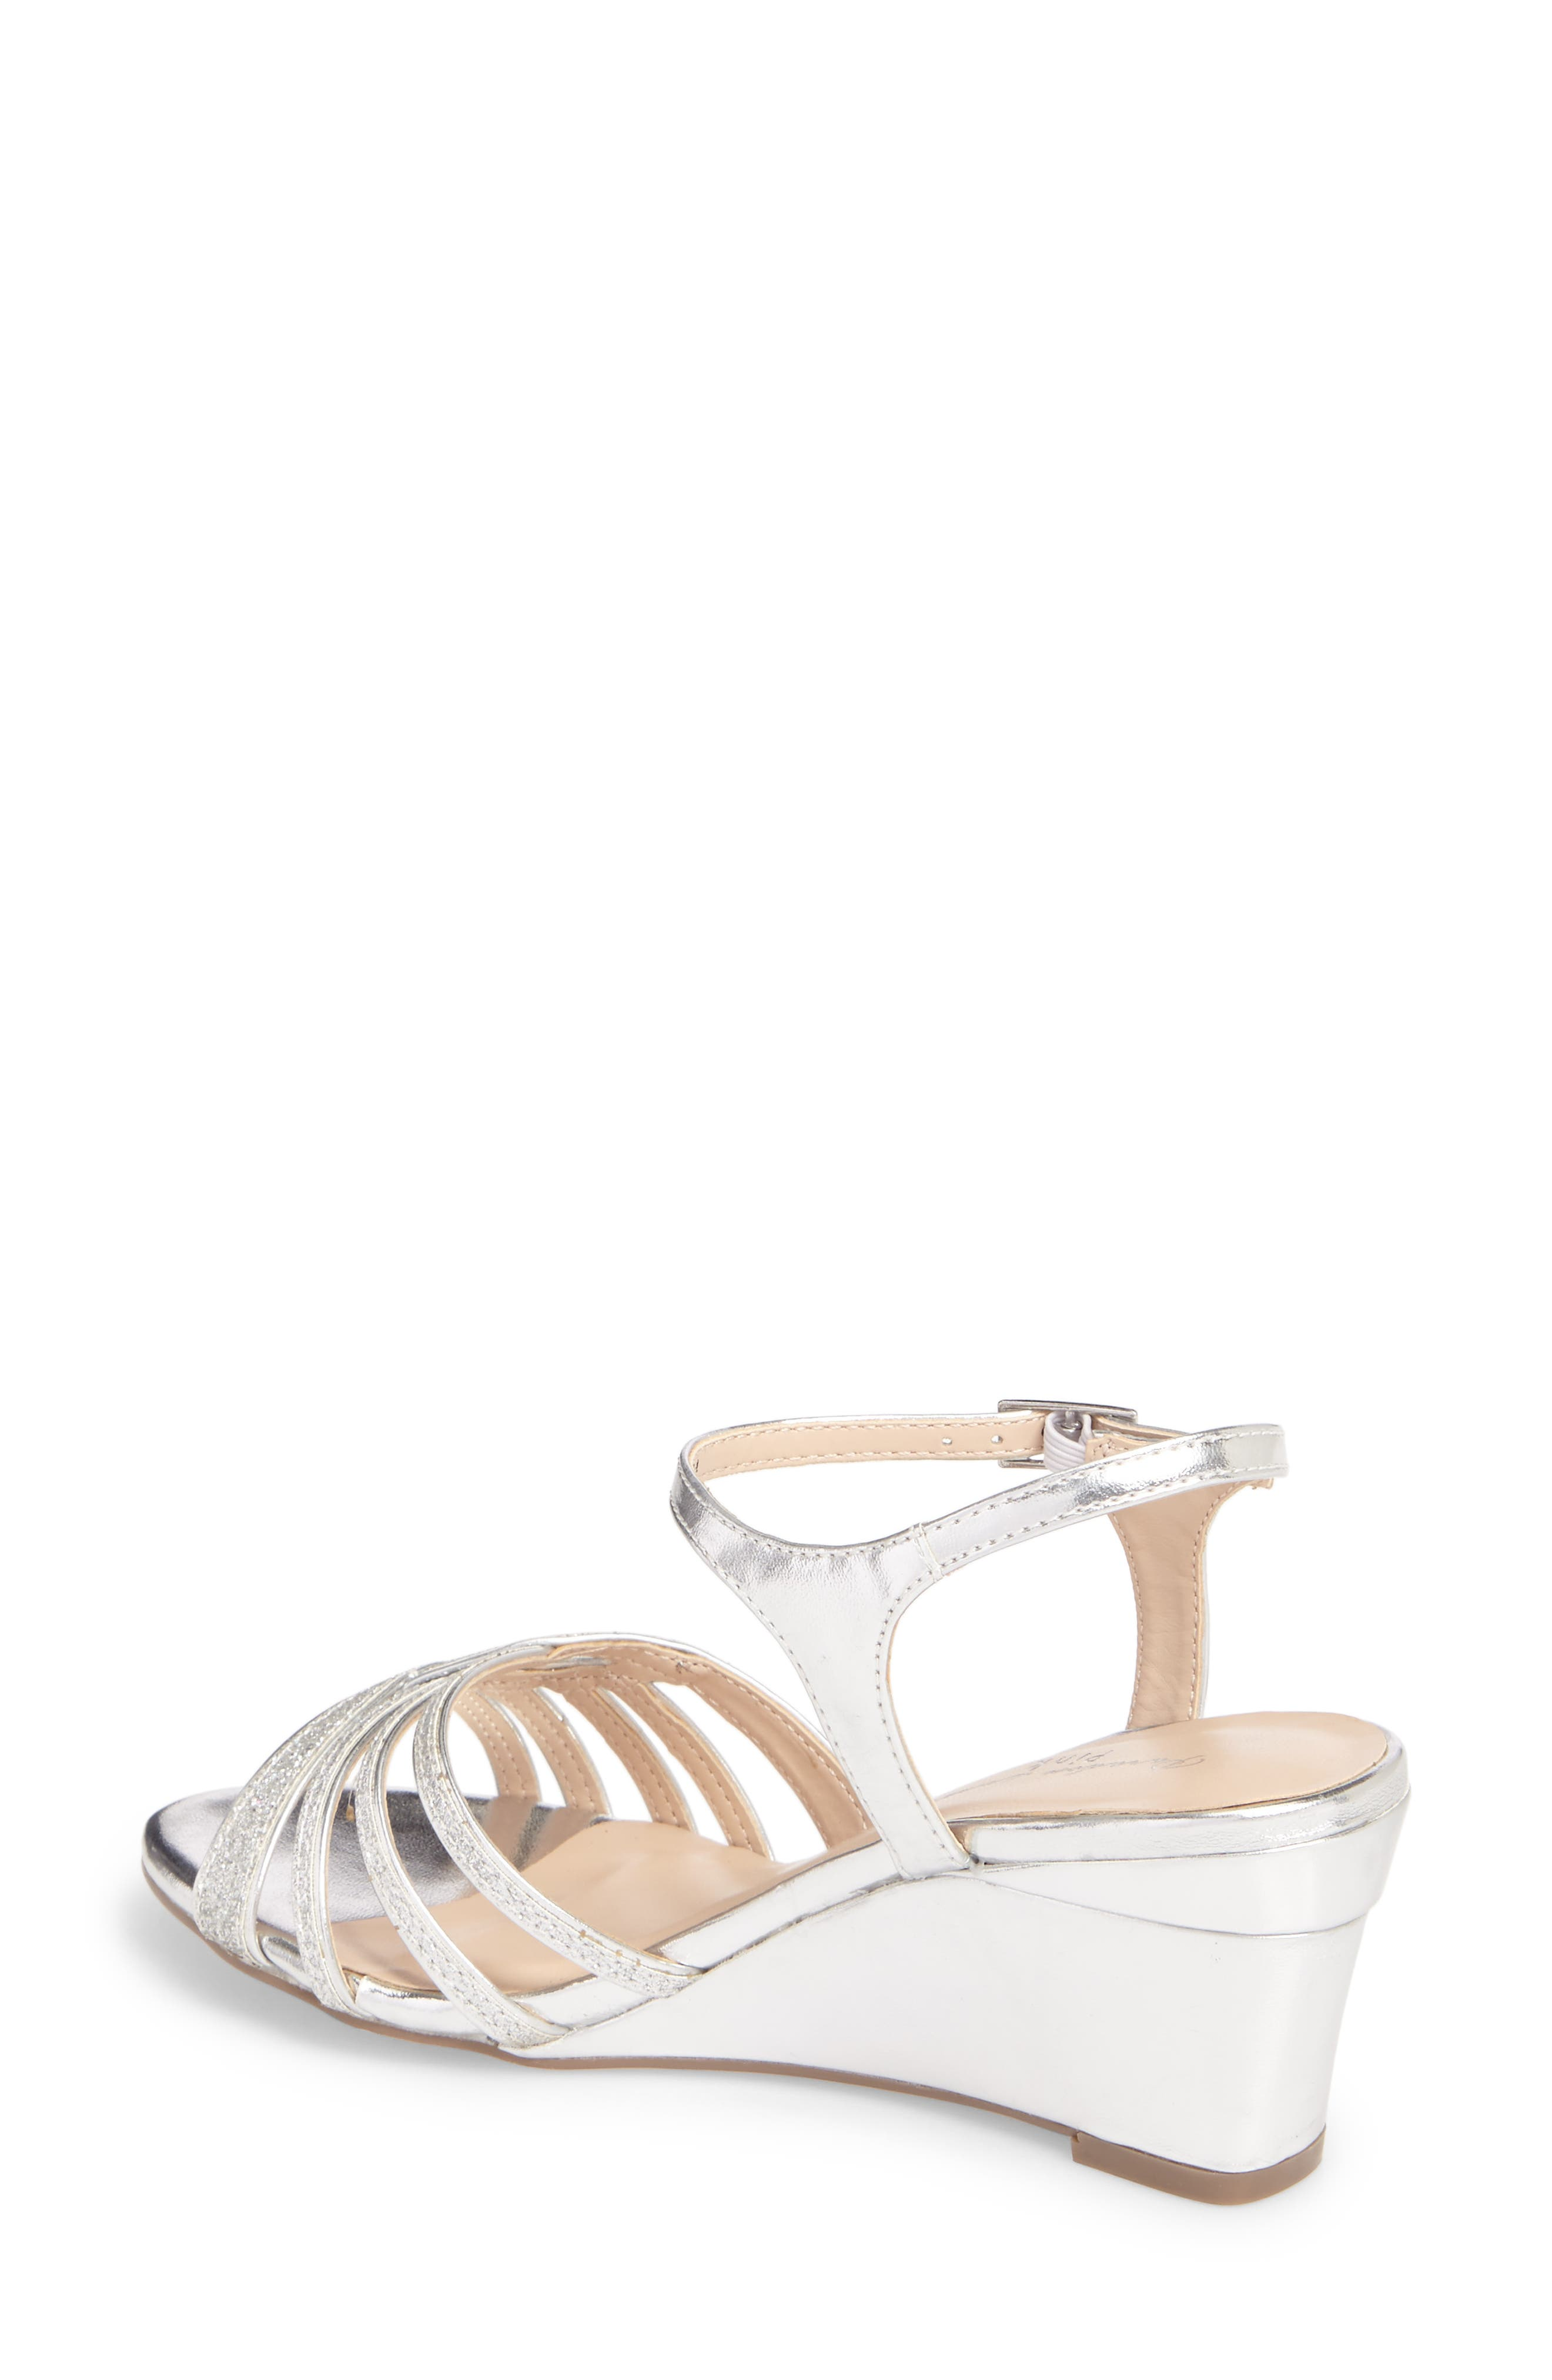 PARADOX LONDON PINK,                             Karianne Wedge Sandal,                             Alternate thumbnail 2, color,                             040